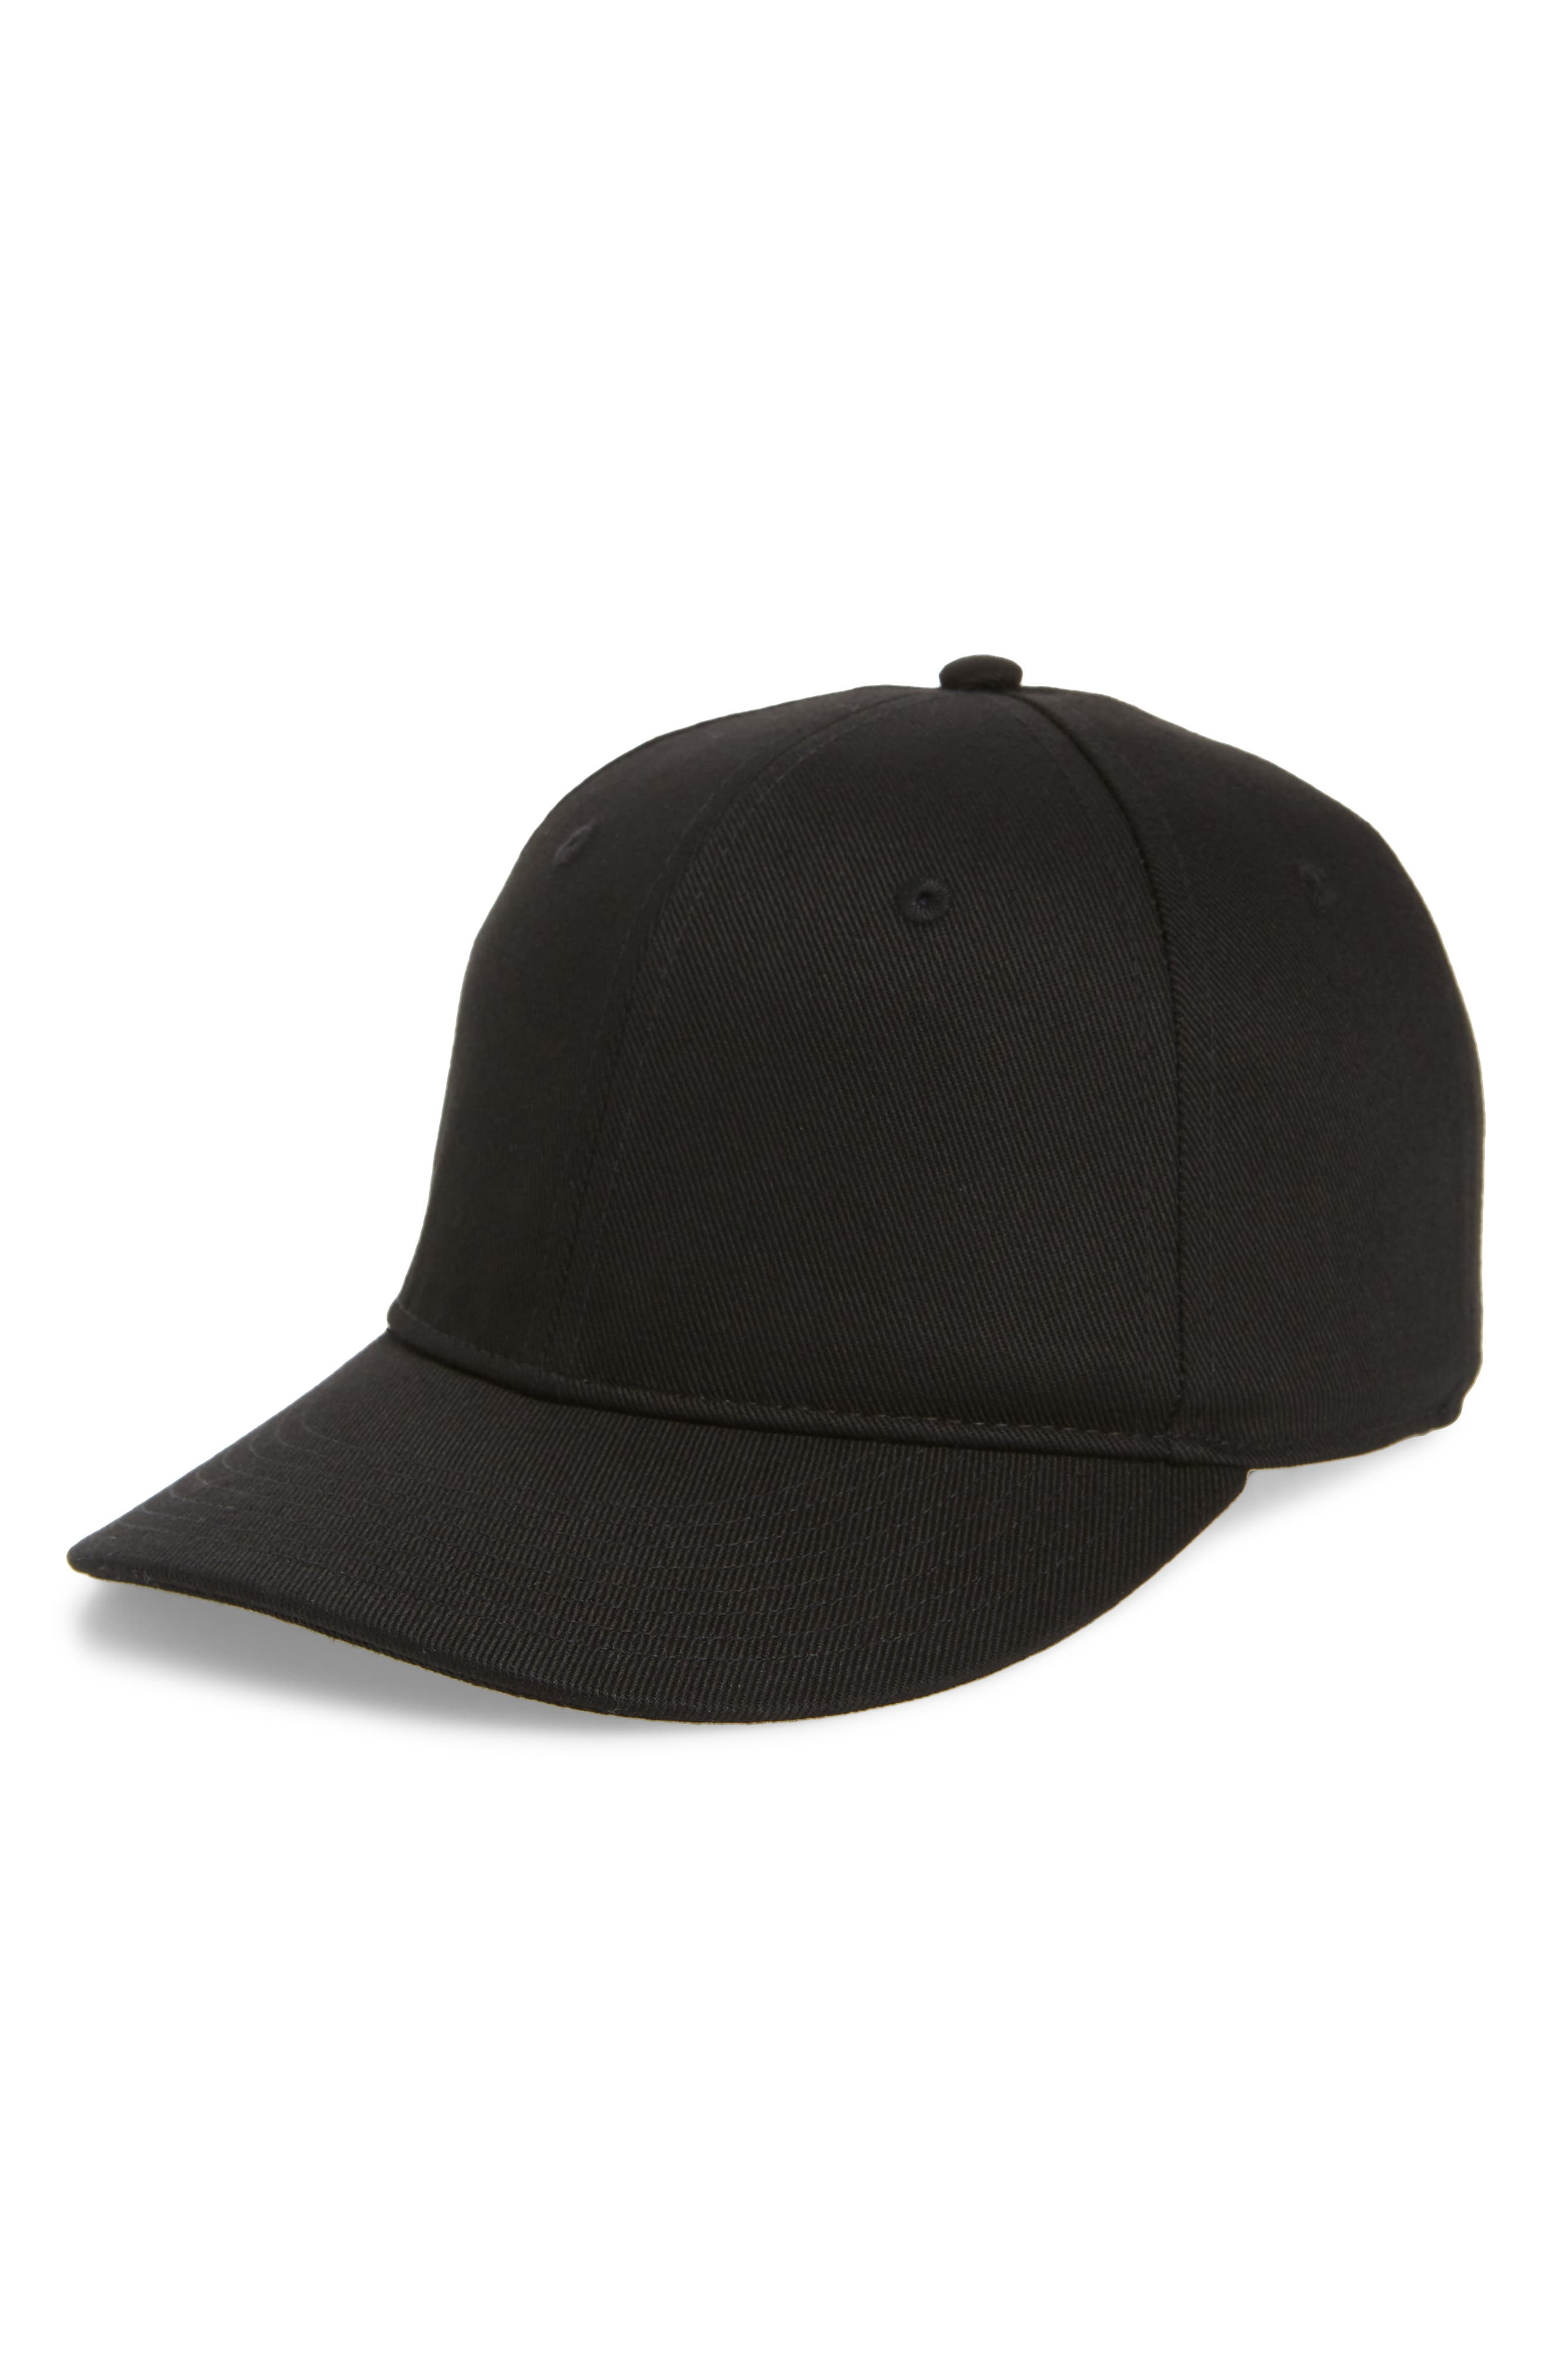 Dylan Ball Cap,                             Main thumbnail 1, color,                             Black Twill